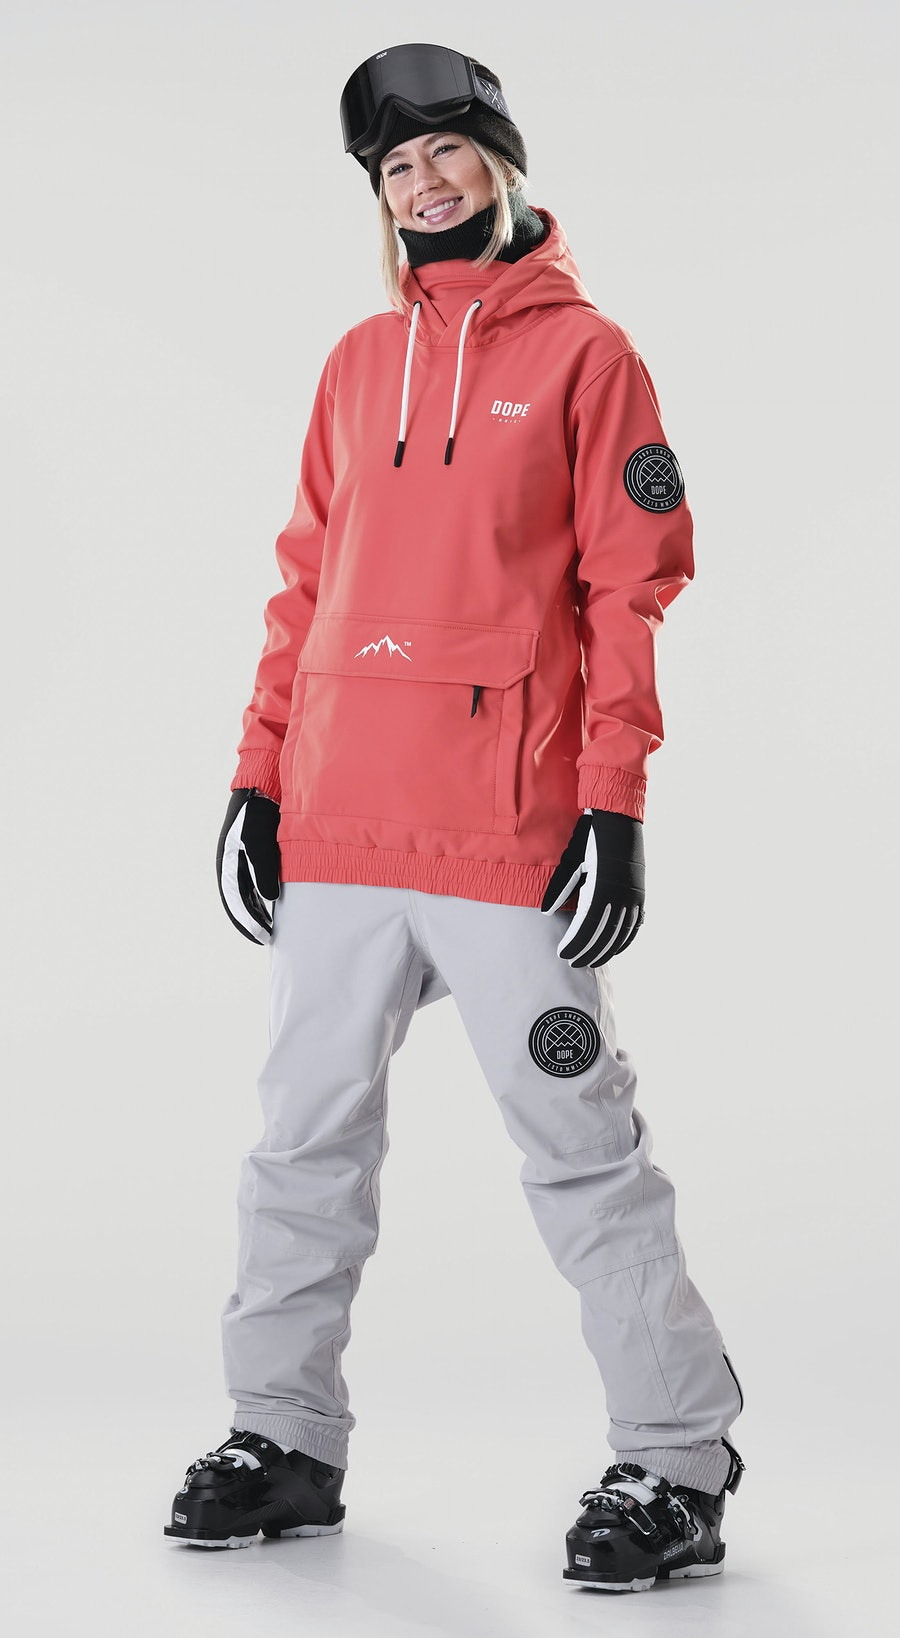 Dope Wylie Capital W Coral Ski Clothing Multi